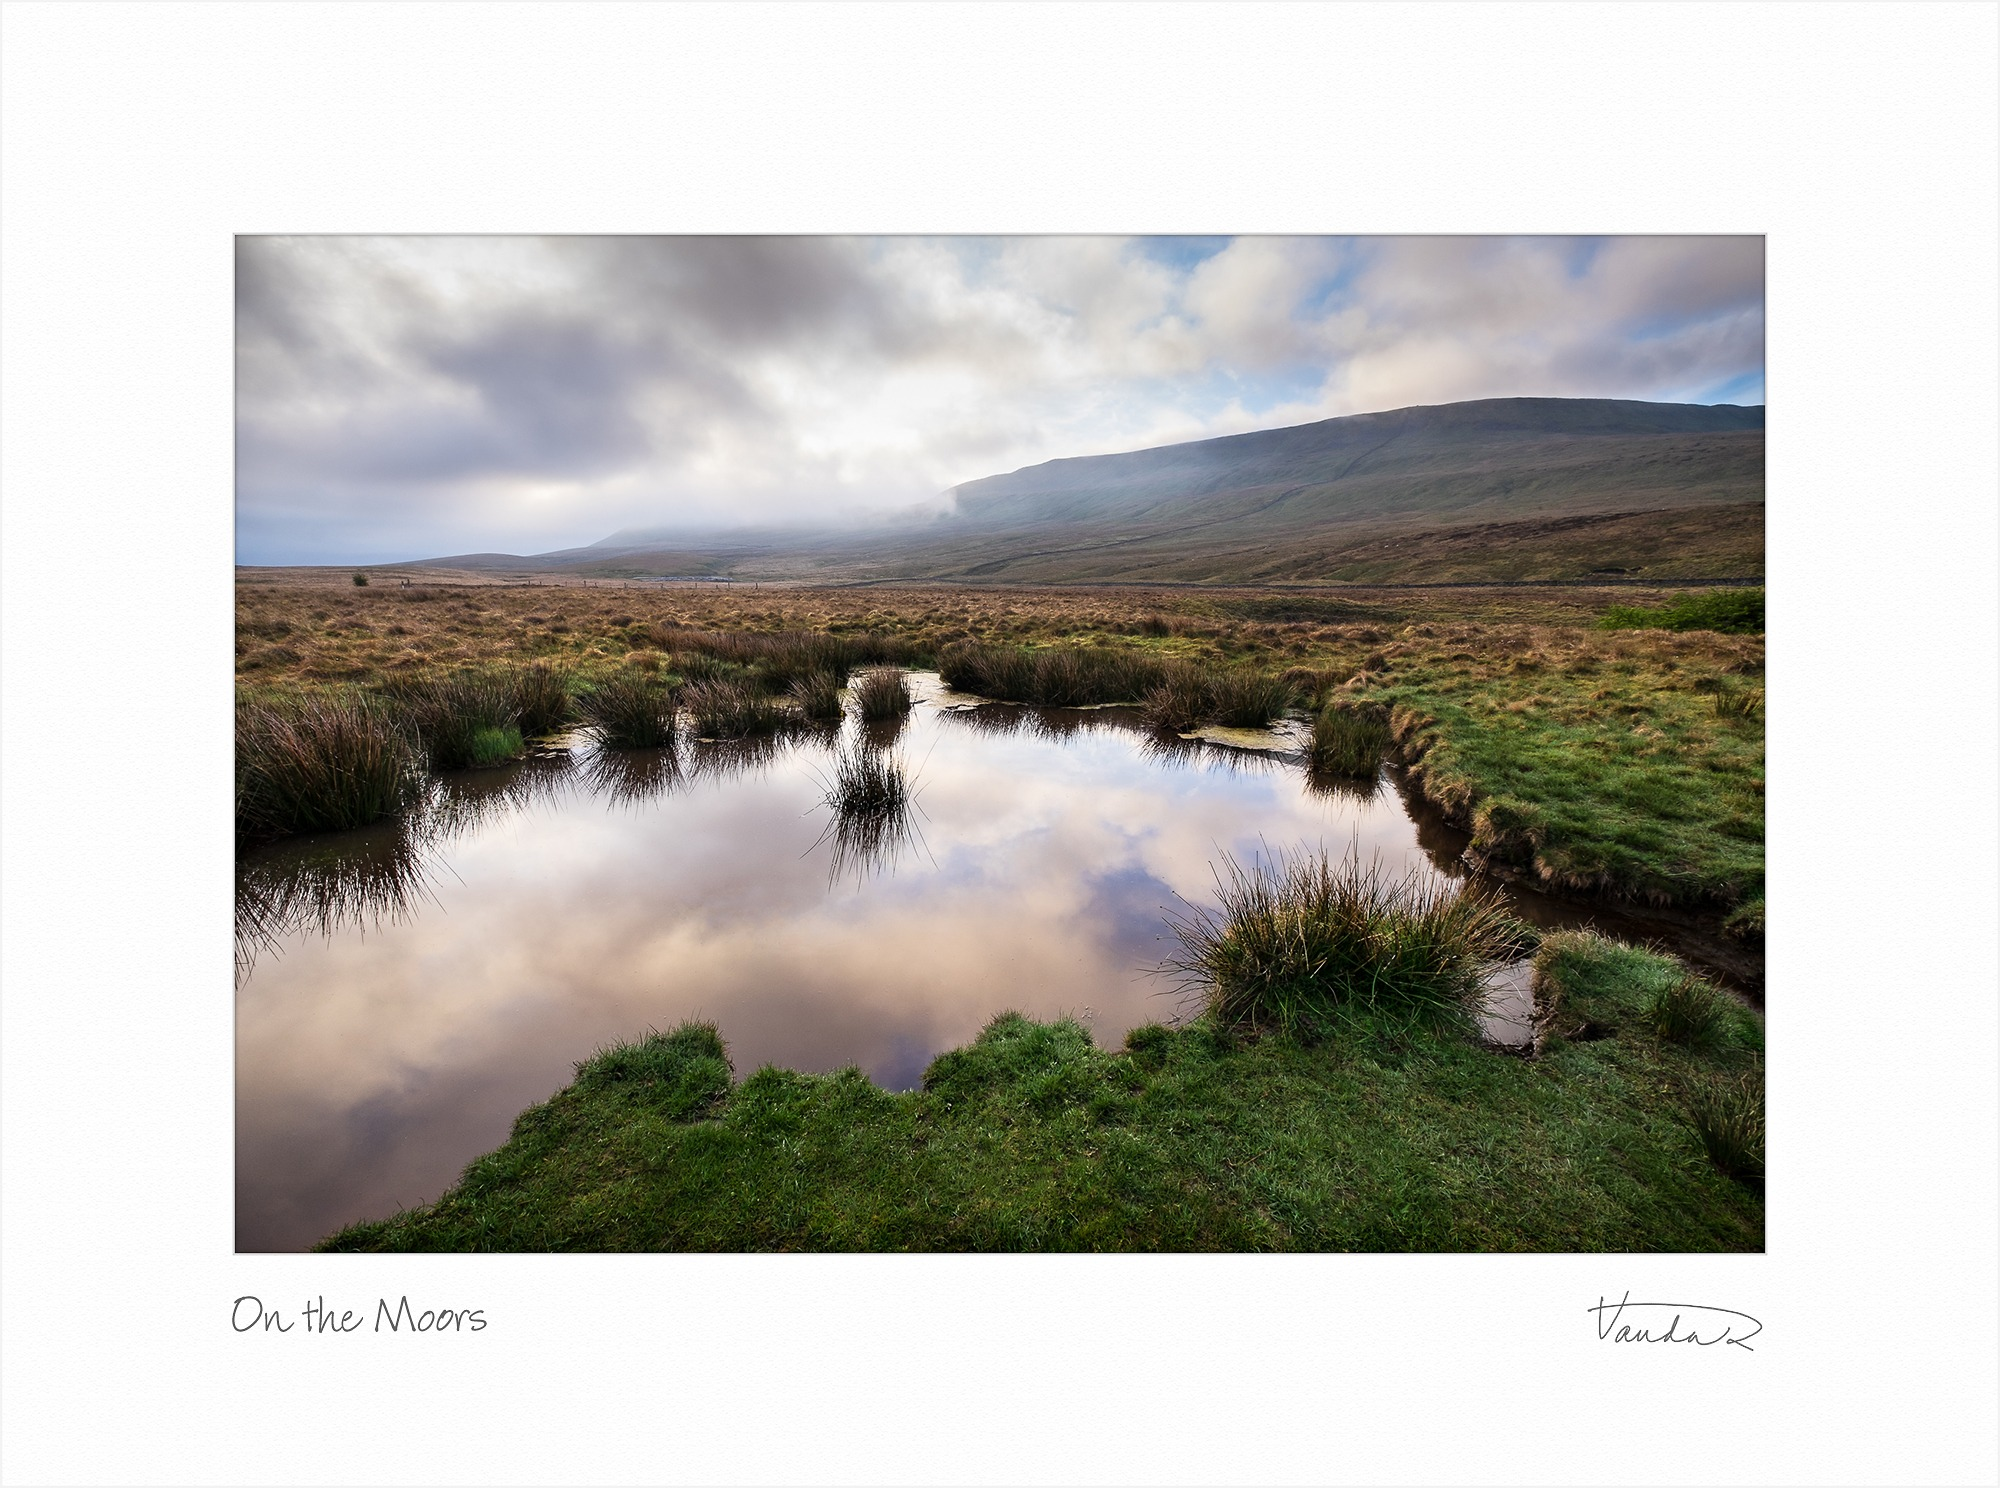 Morning on the Moors